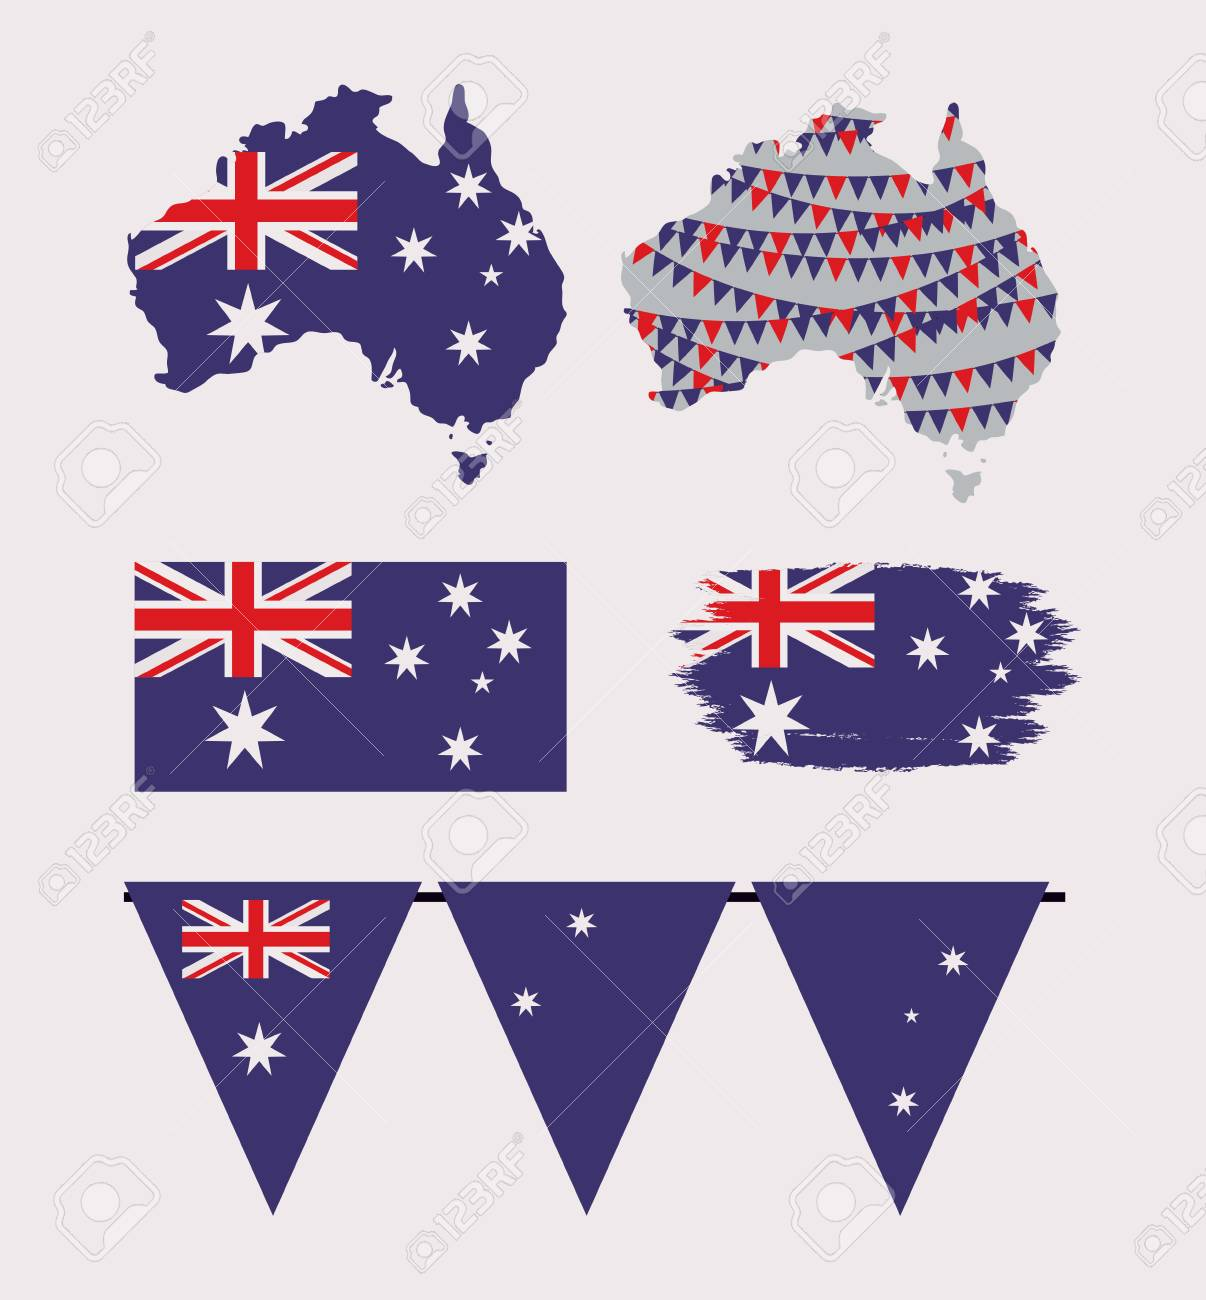 Australia Map And Flag.Icons Set Of Australia Day With Colorful Australian Maps Flags